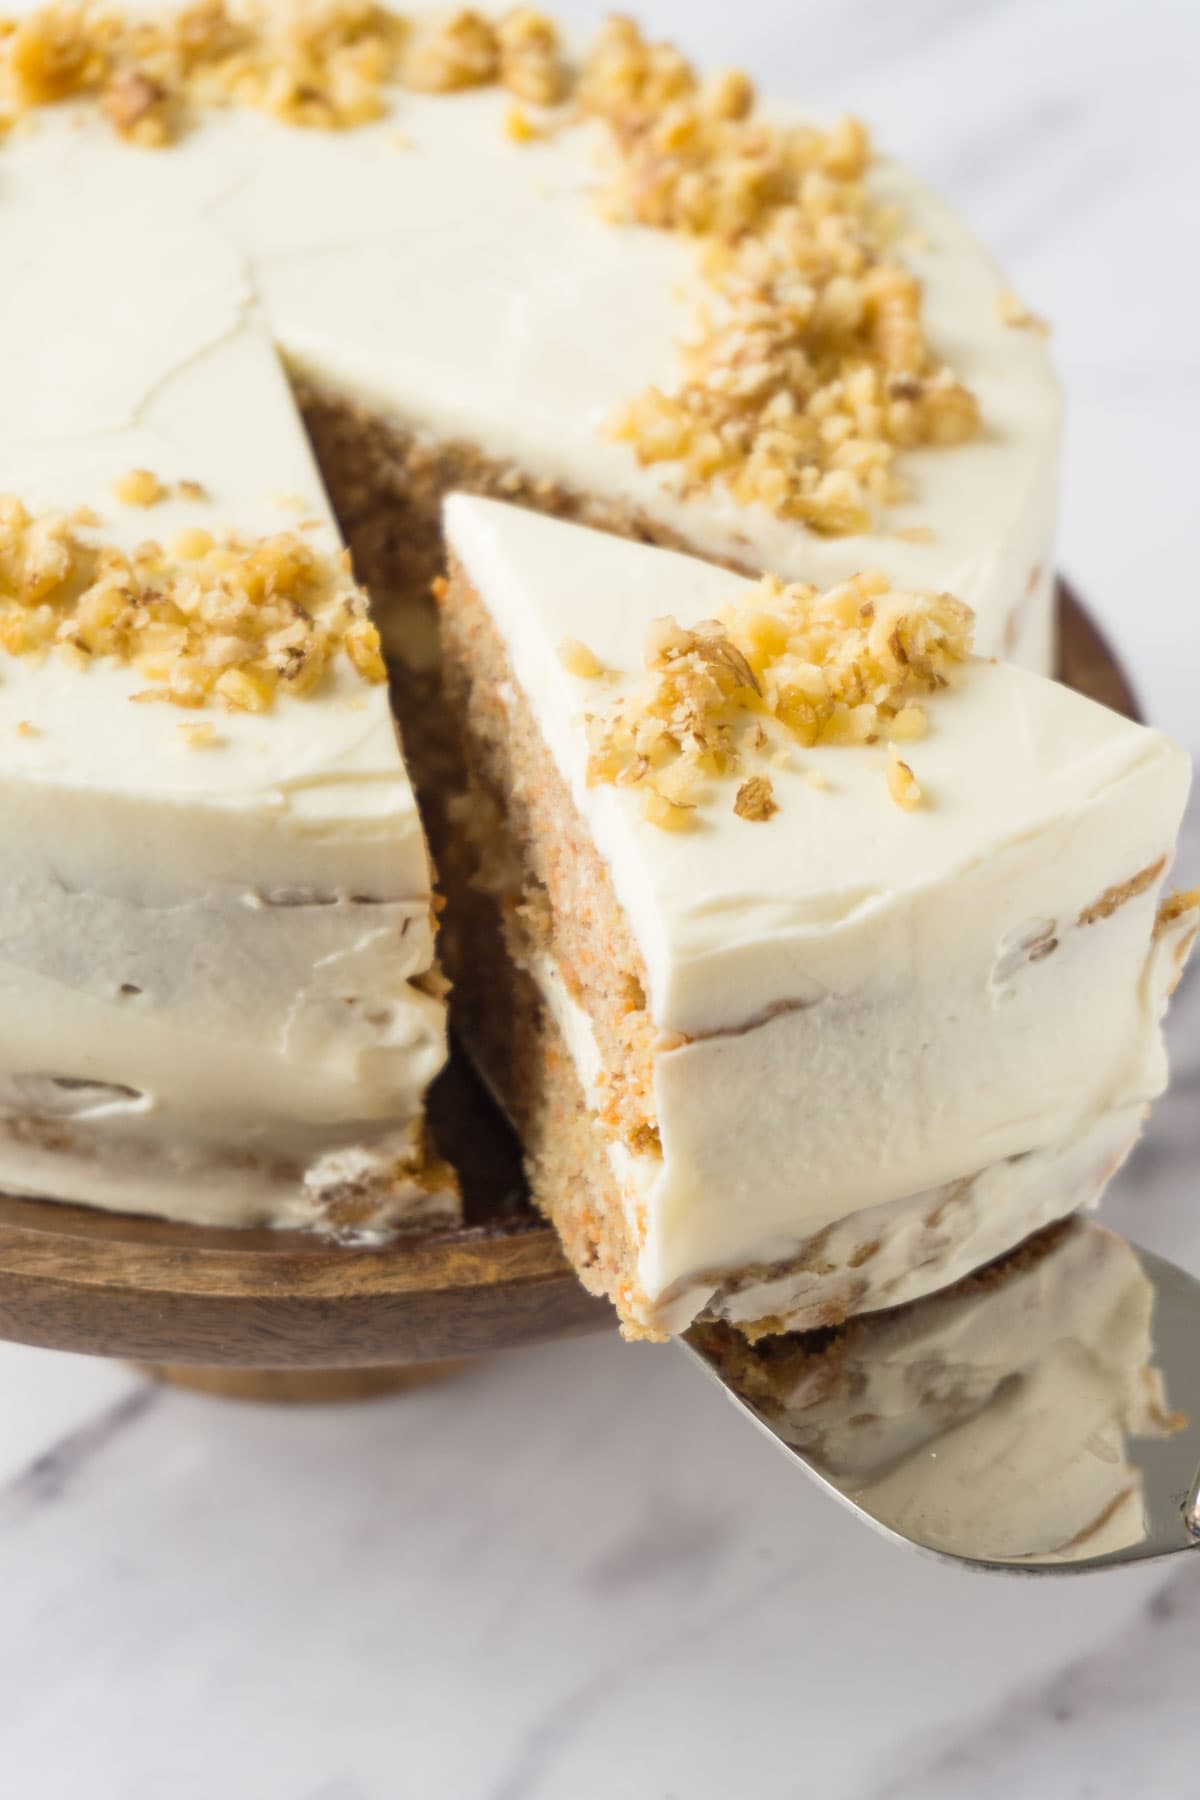 Taking a piece of carrot cake topped with crushed walnuts using a cake server.